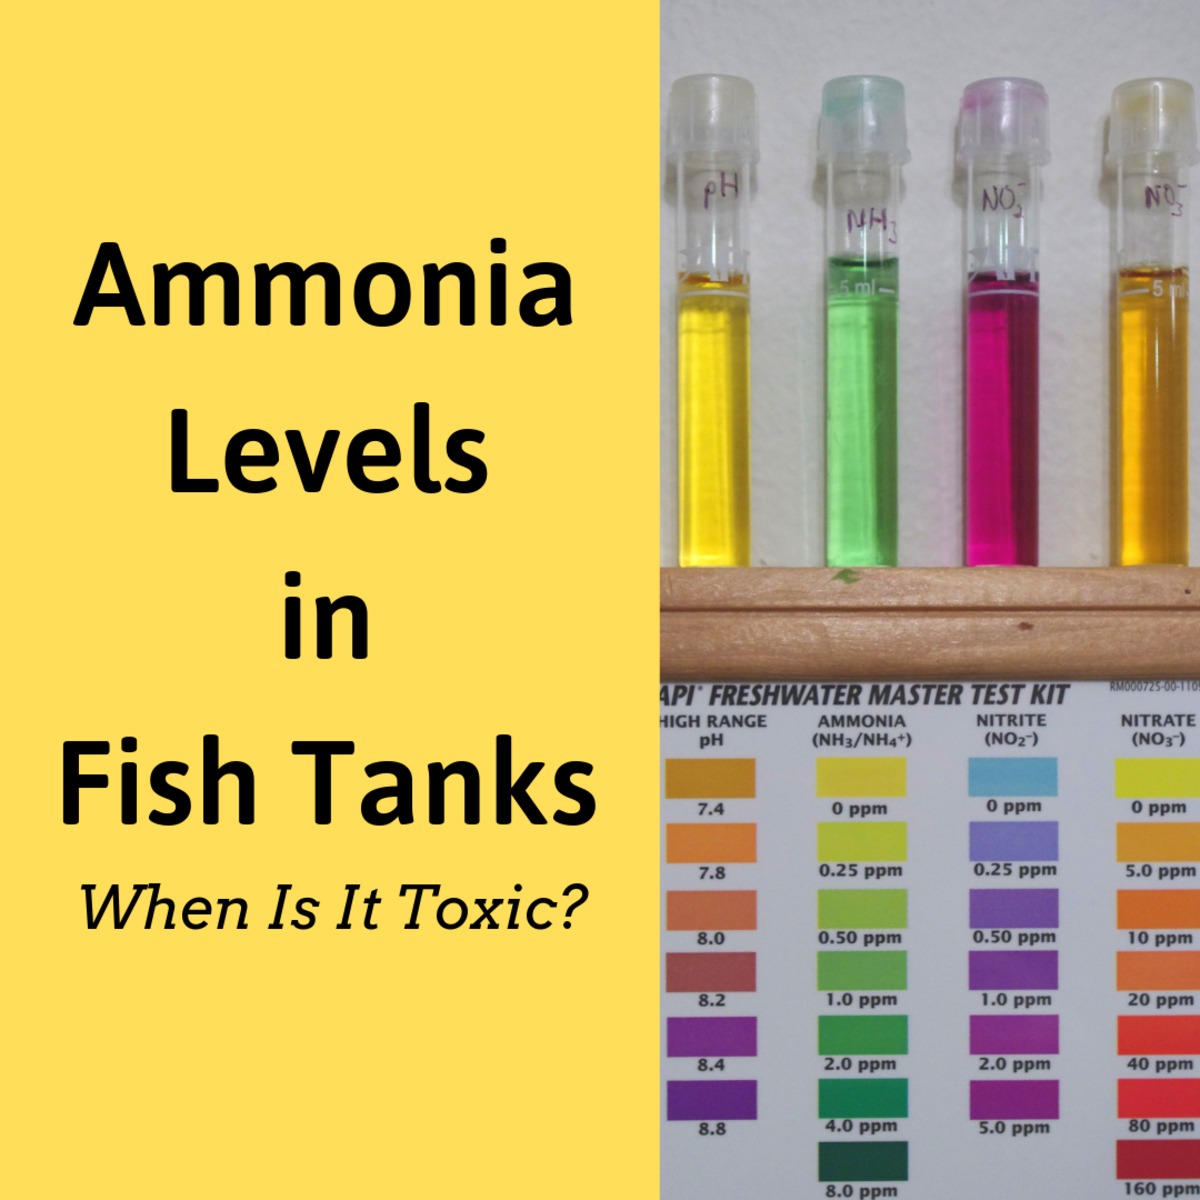 How Much Ammonia Is Toxic to Fish? (Ammonia Levels in Fish